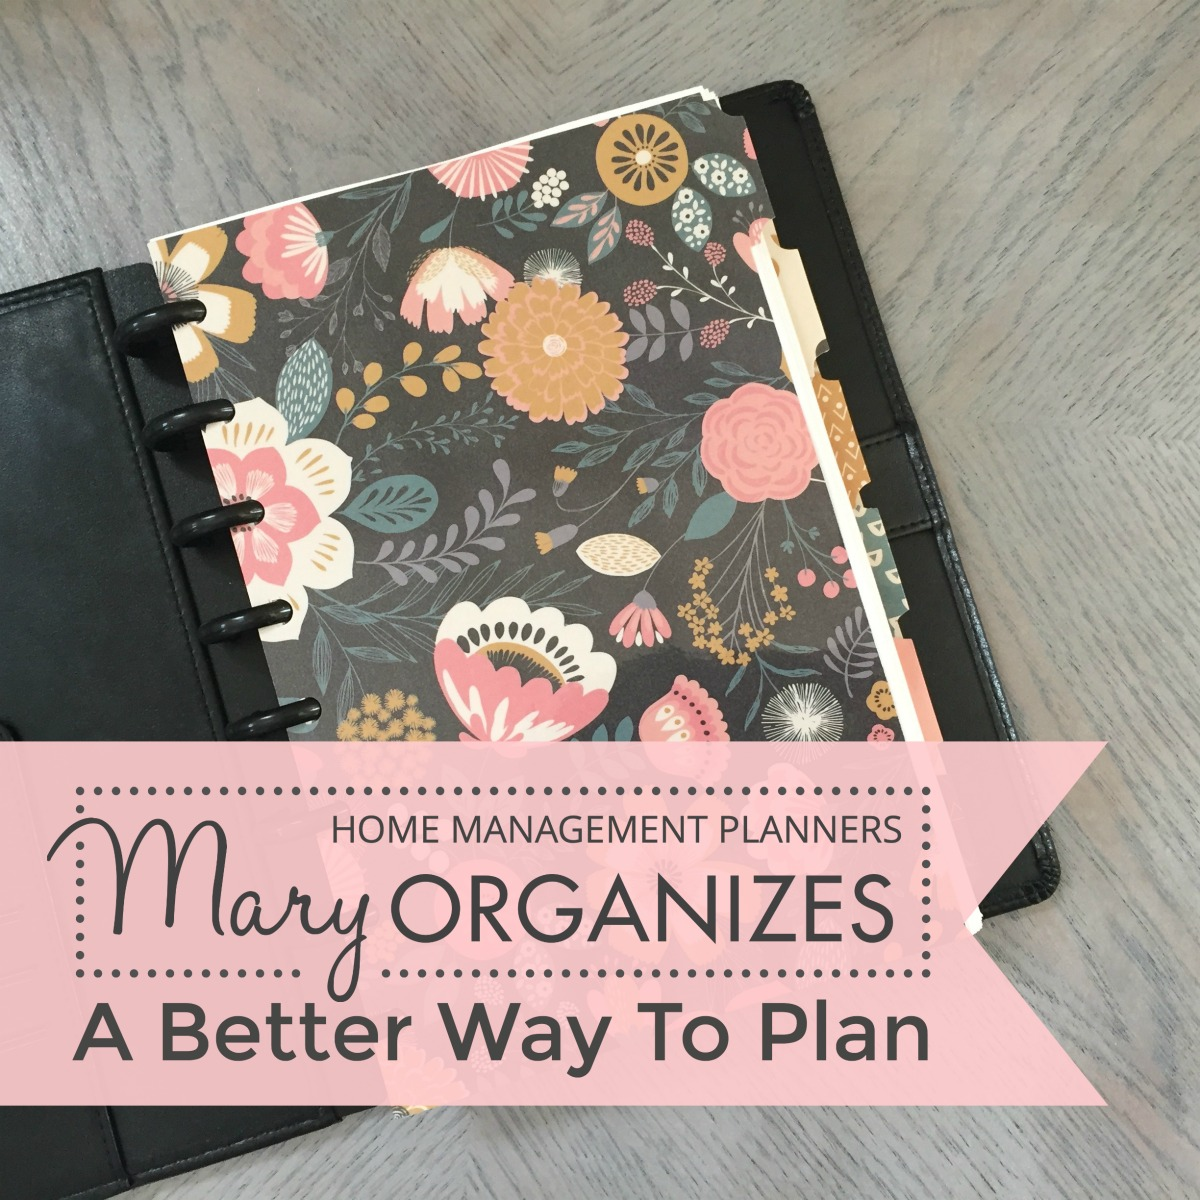 mo-planners-a-better-way-to-plan